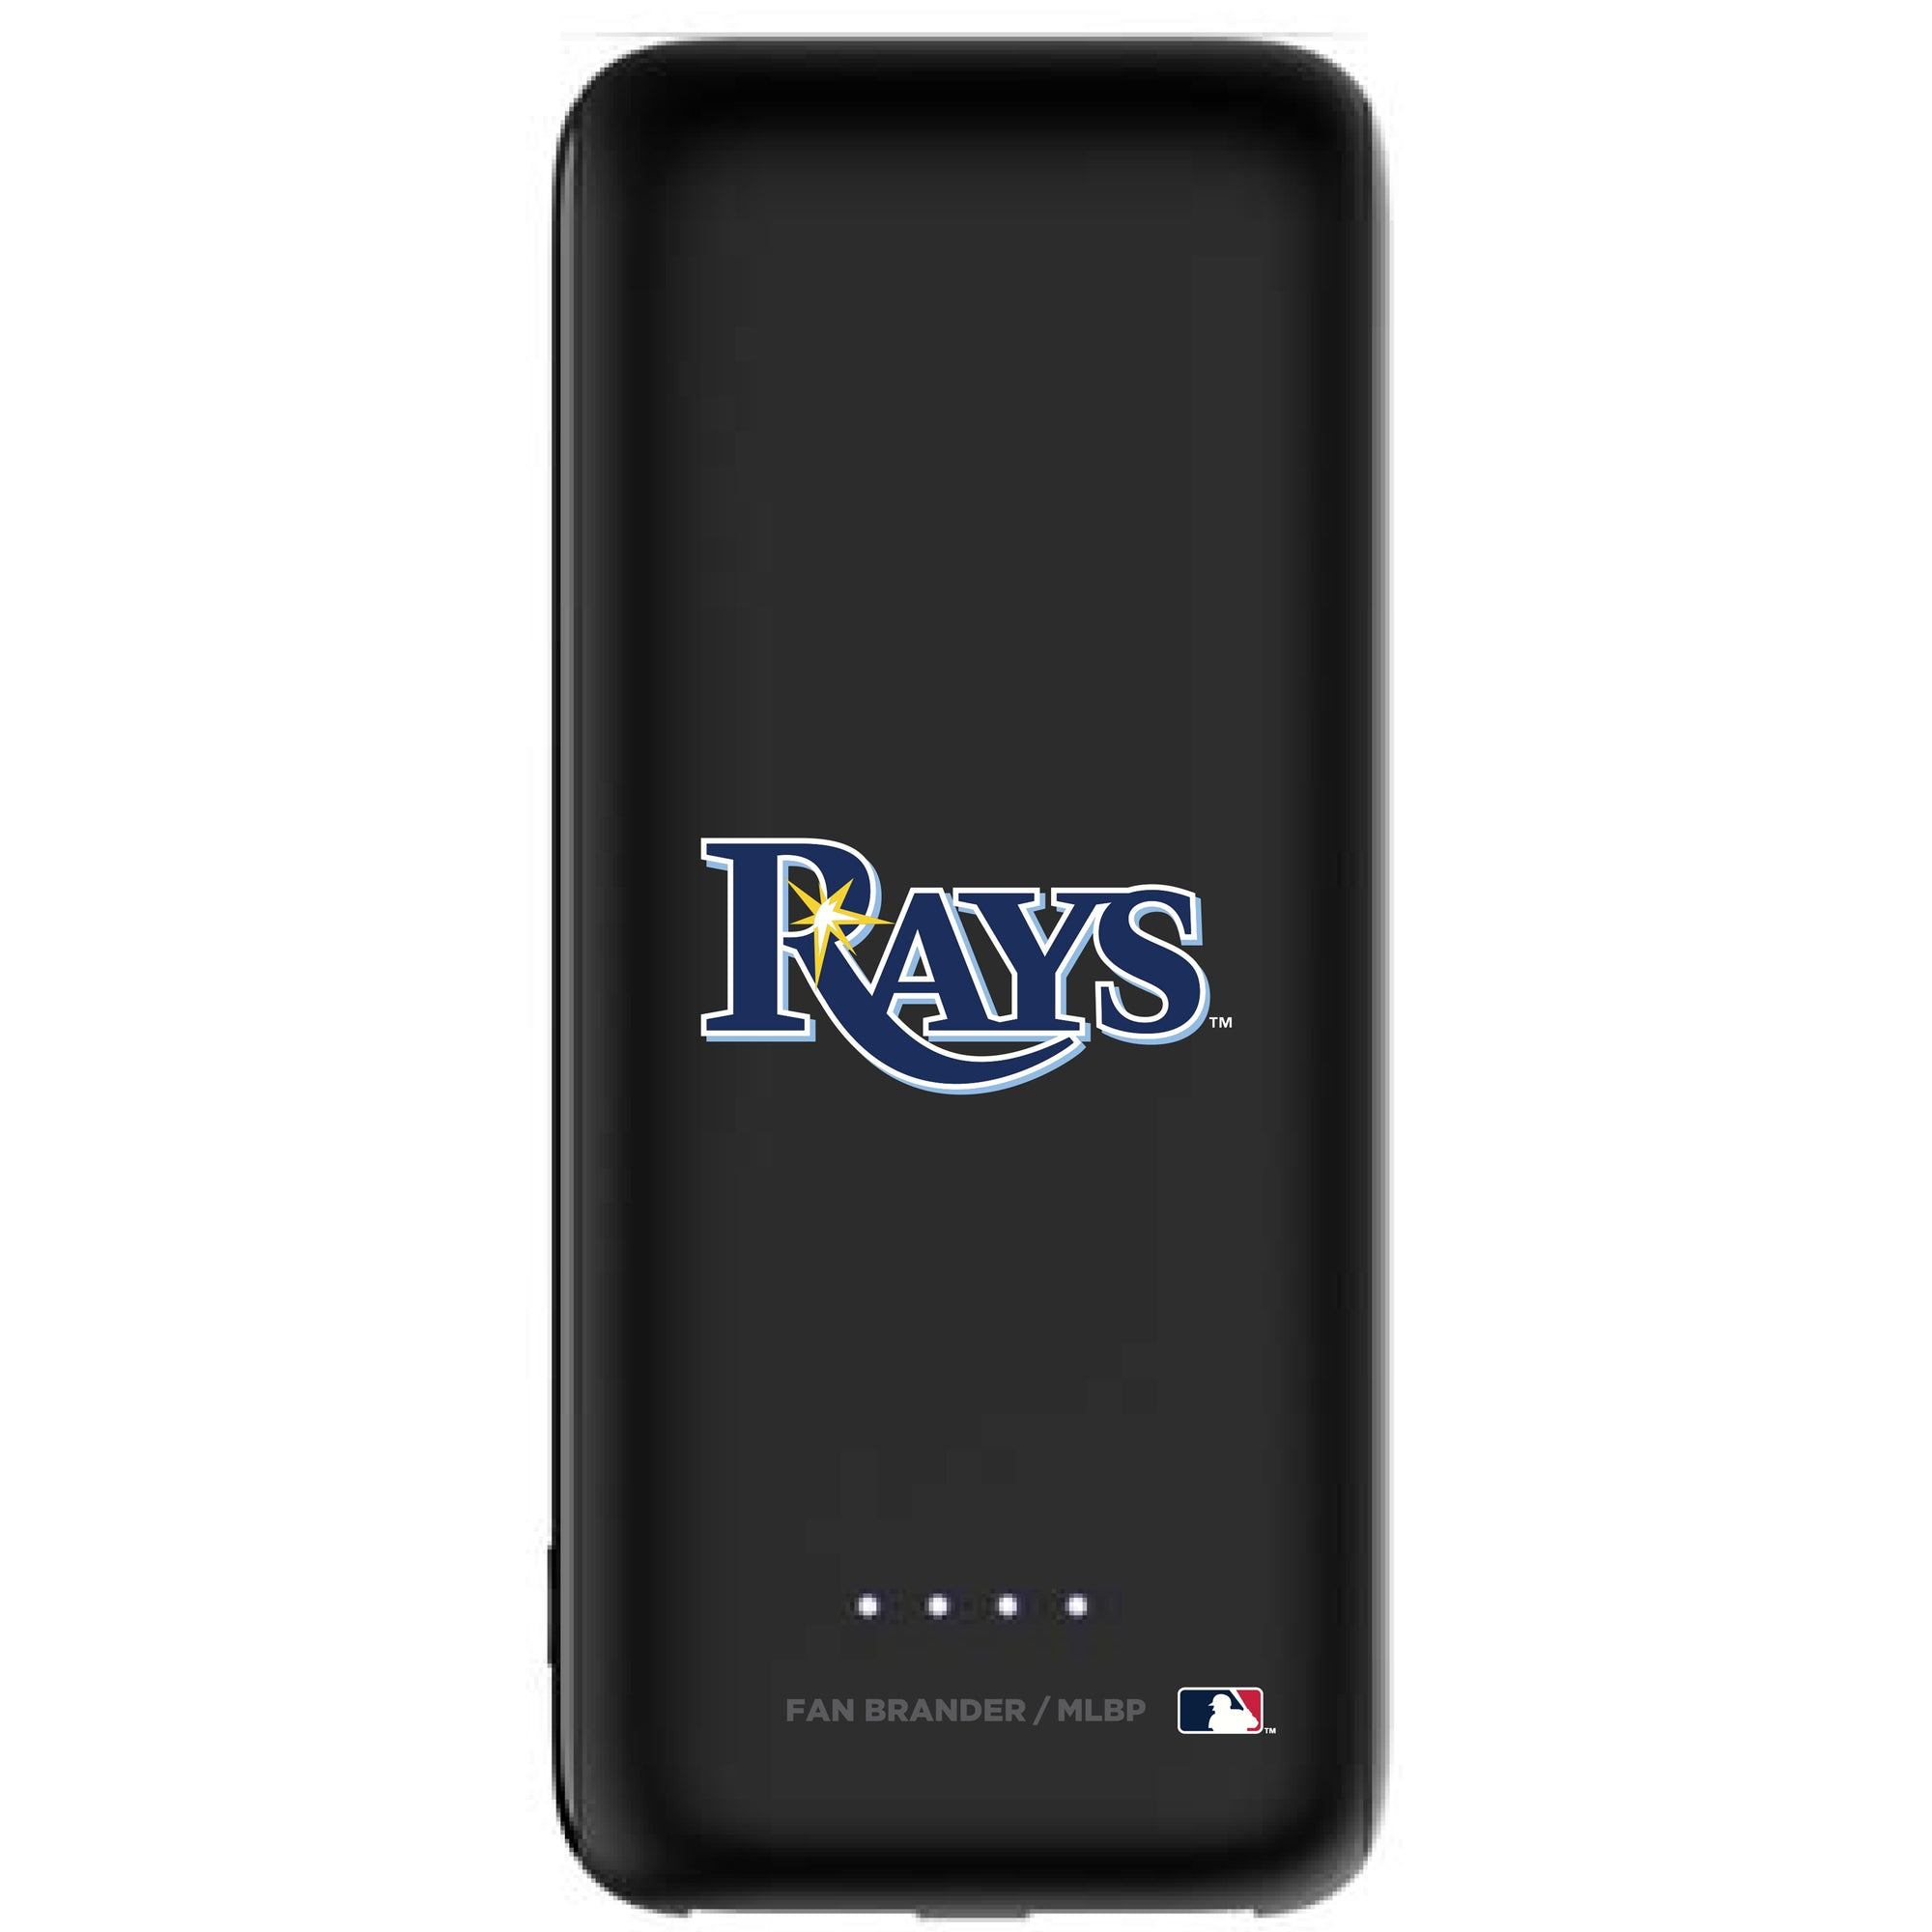 Tampa Bay Rays Power Boost Mini 5,200 mAH